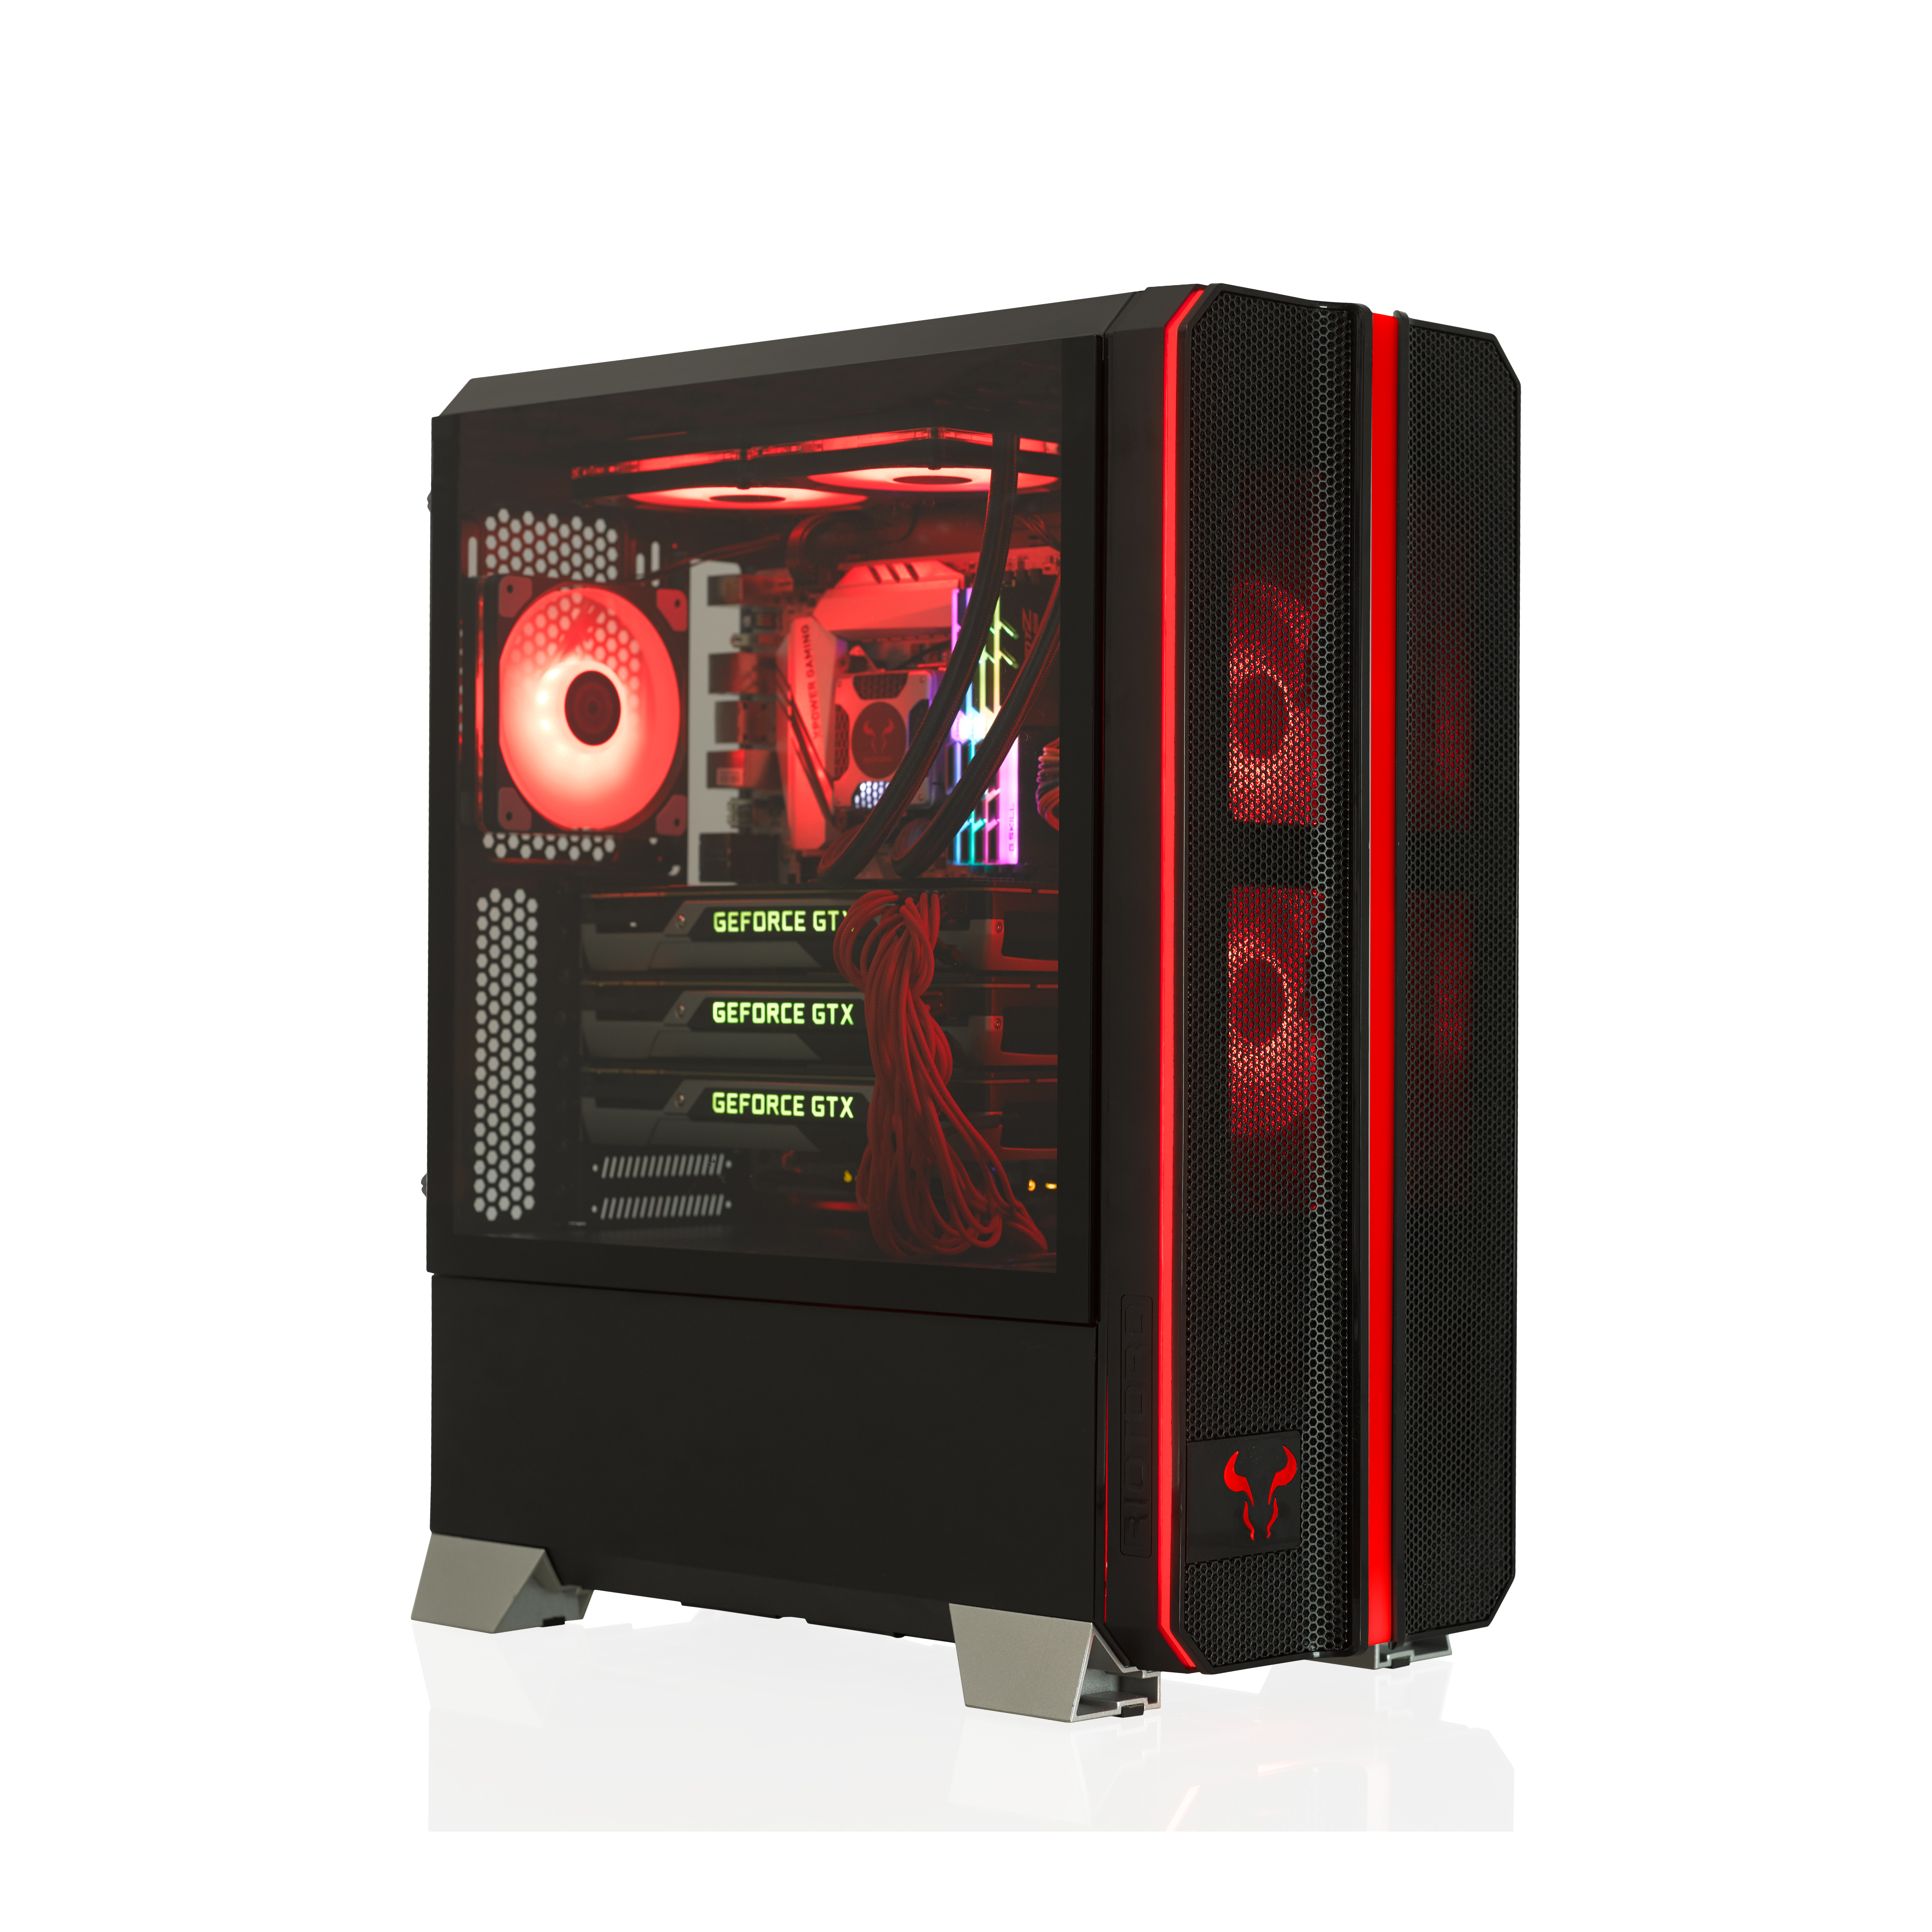 CR1288 Prism RGB Full-Tower Case.